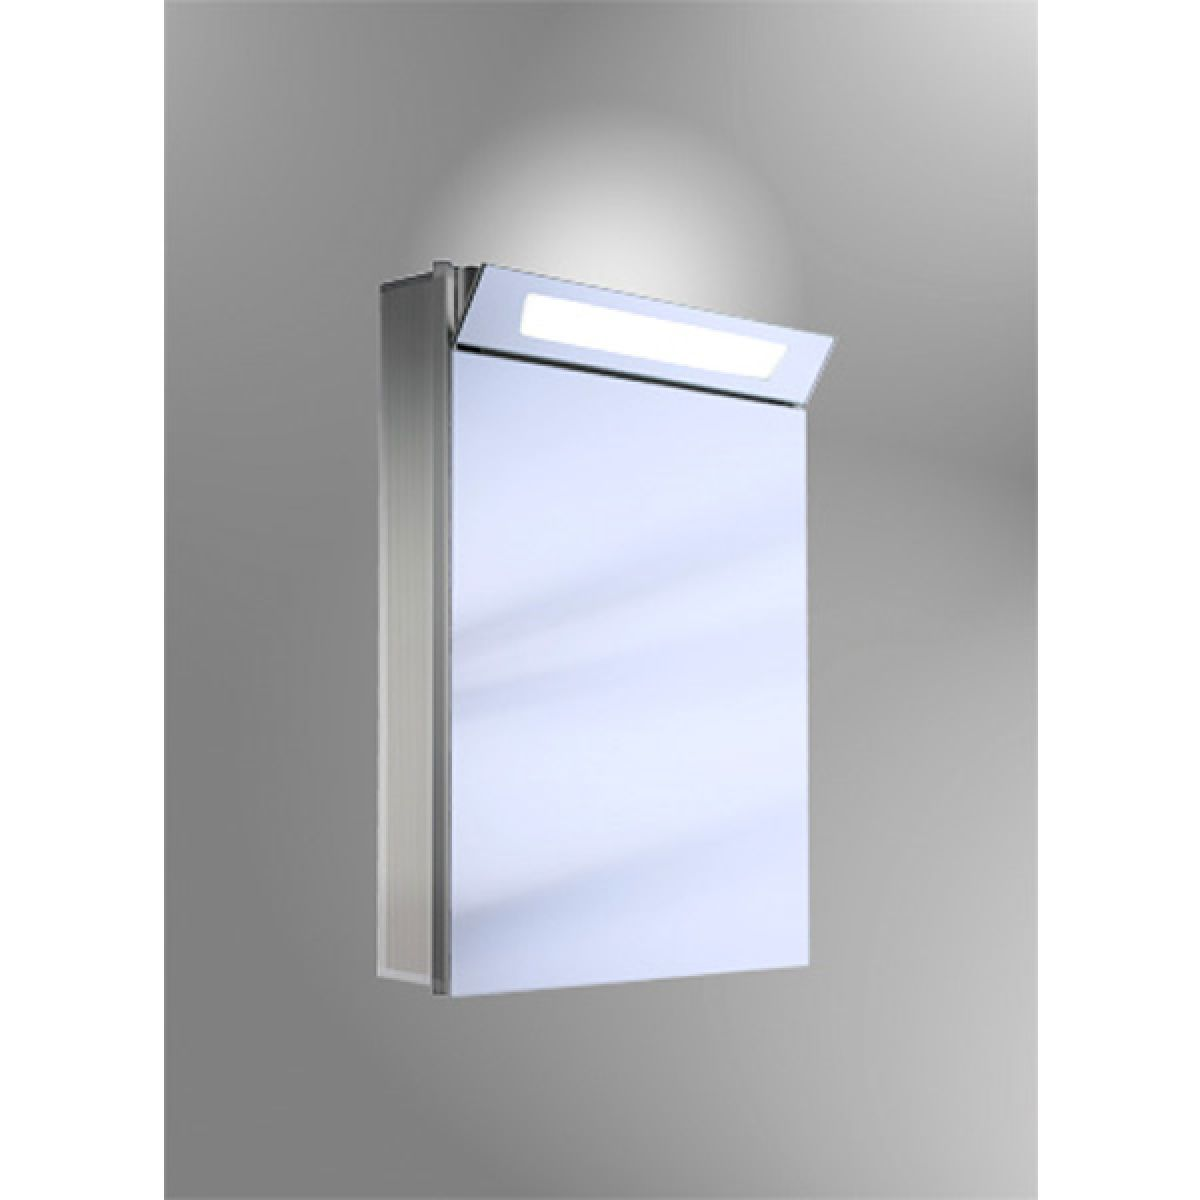 Schneider Capeline 1 Door Illuminated Mirror Cabinet : UK Bathrooms